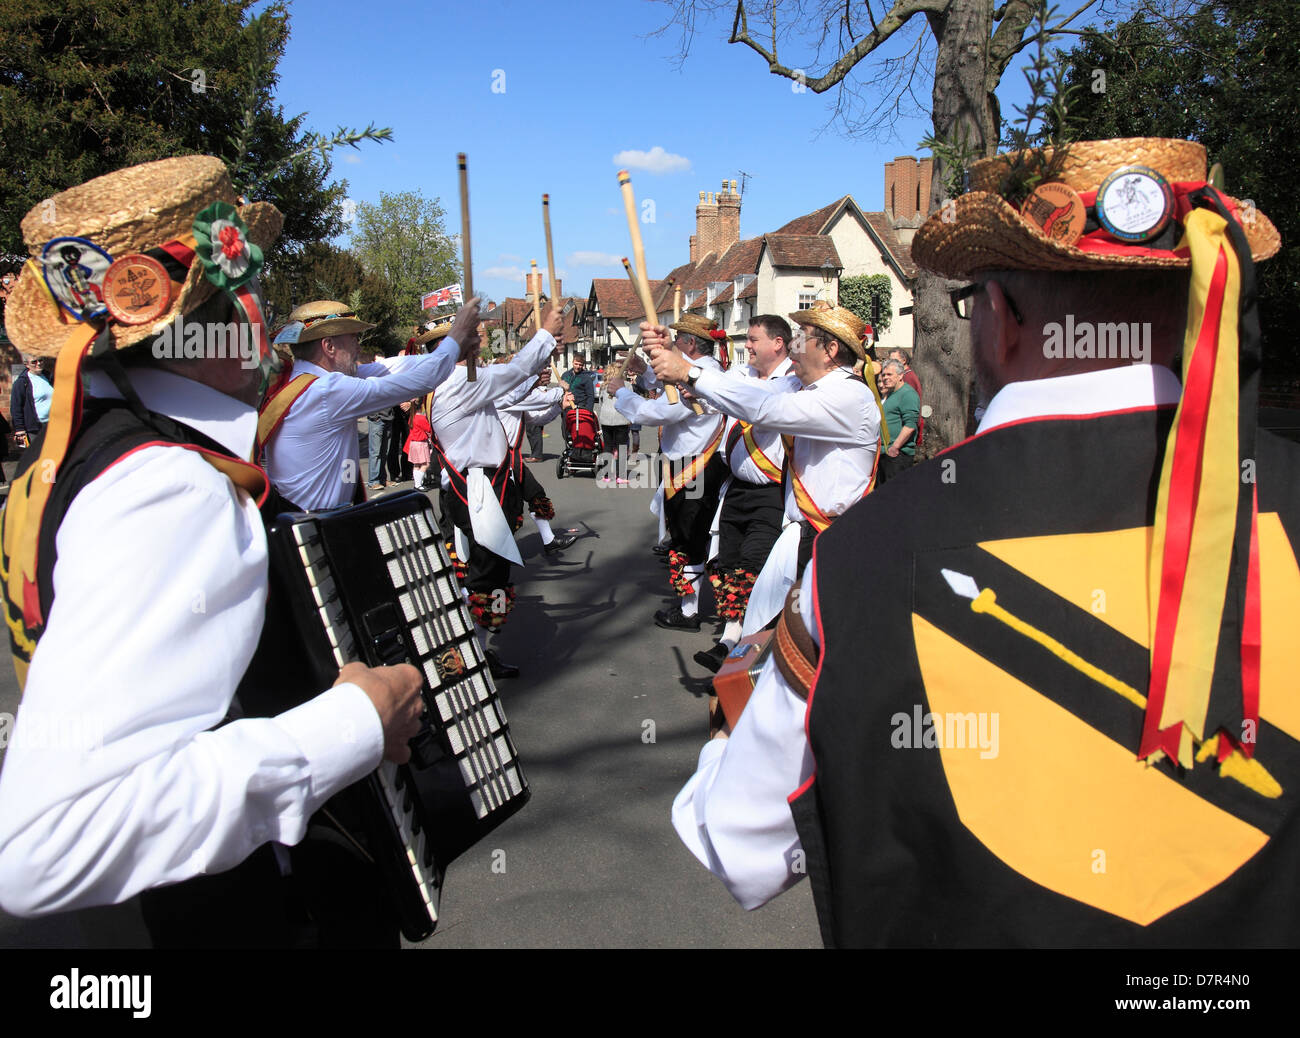 Morris Dancers at the annual Shakespeare Birthday Memorial Parade at Stratford upon Avon. - Stock Image